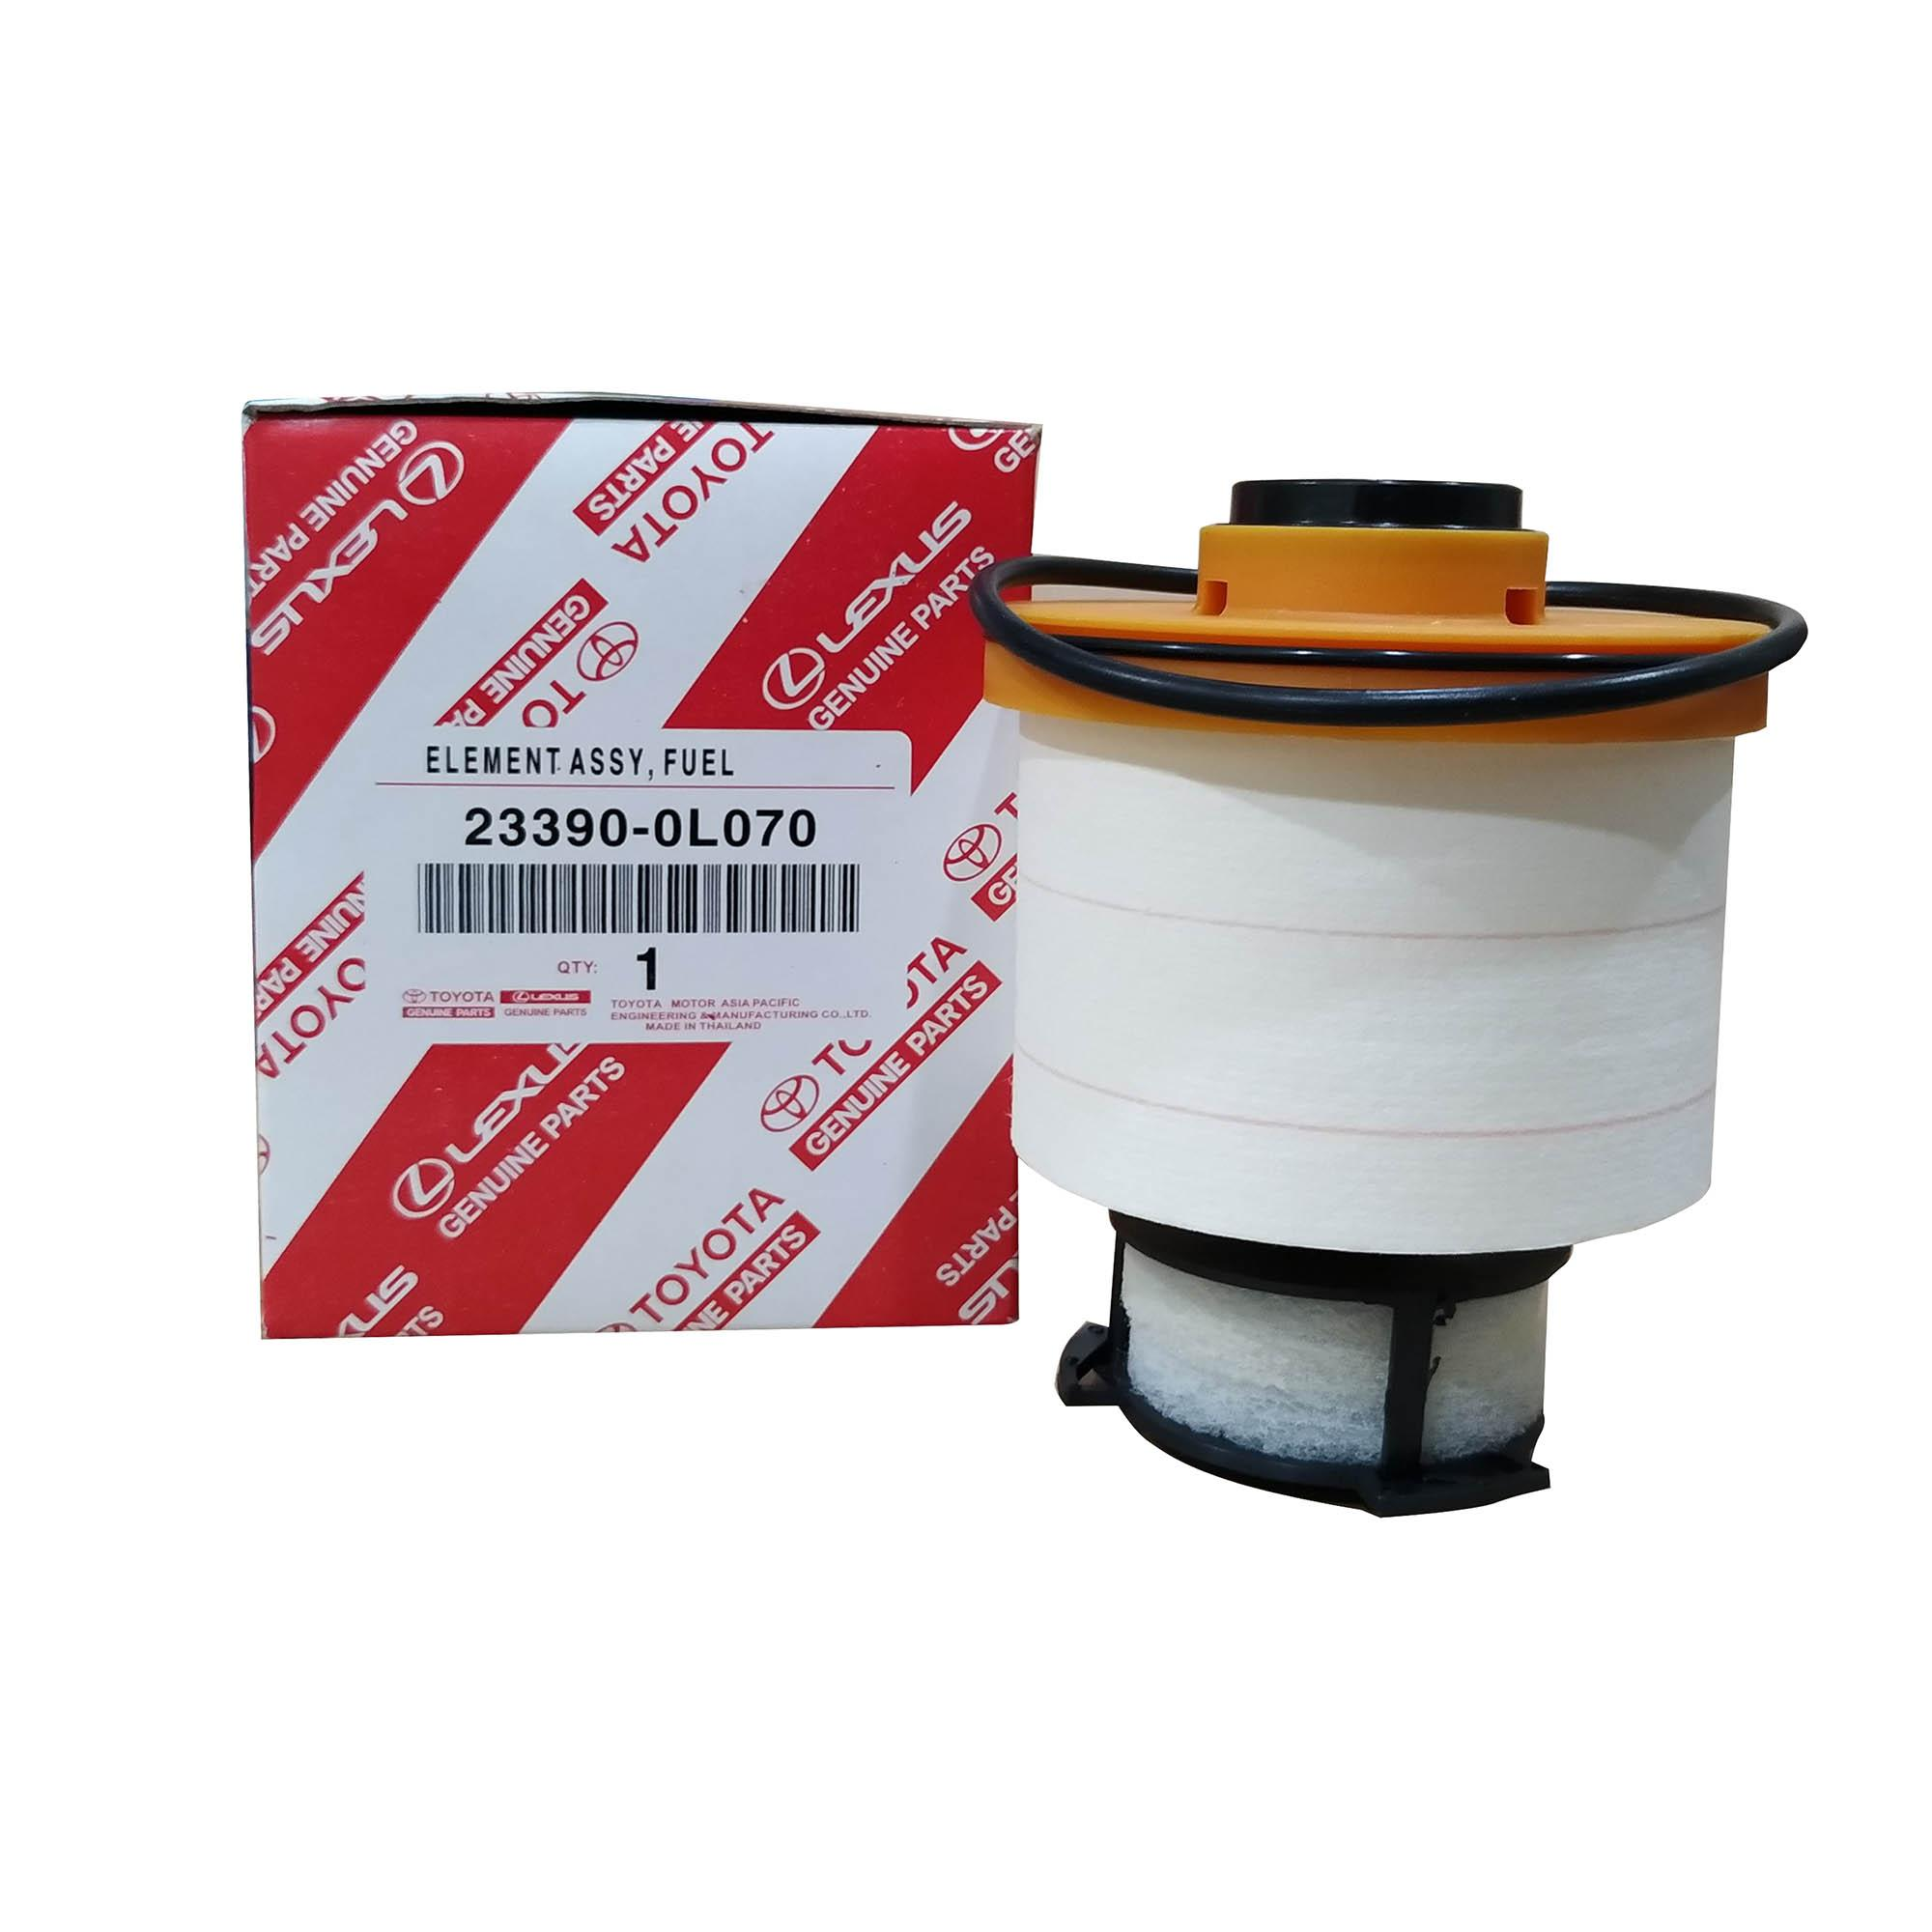 hight resolution of toyota genuine parts fuel filter 23390 0l070 for toyota fortuner 2016